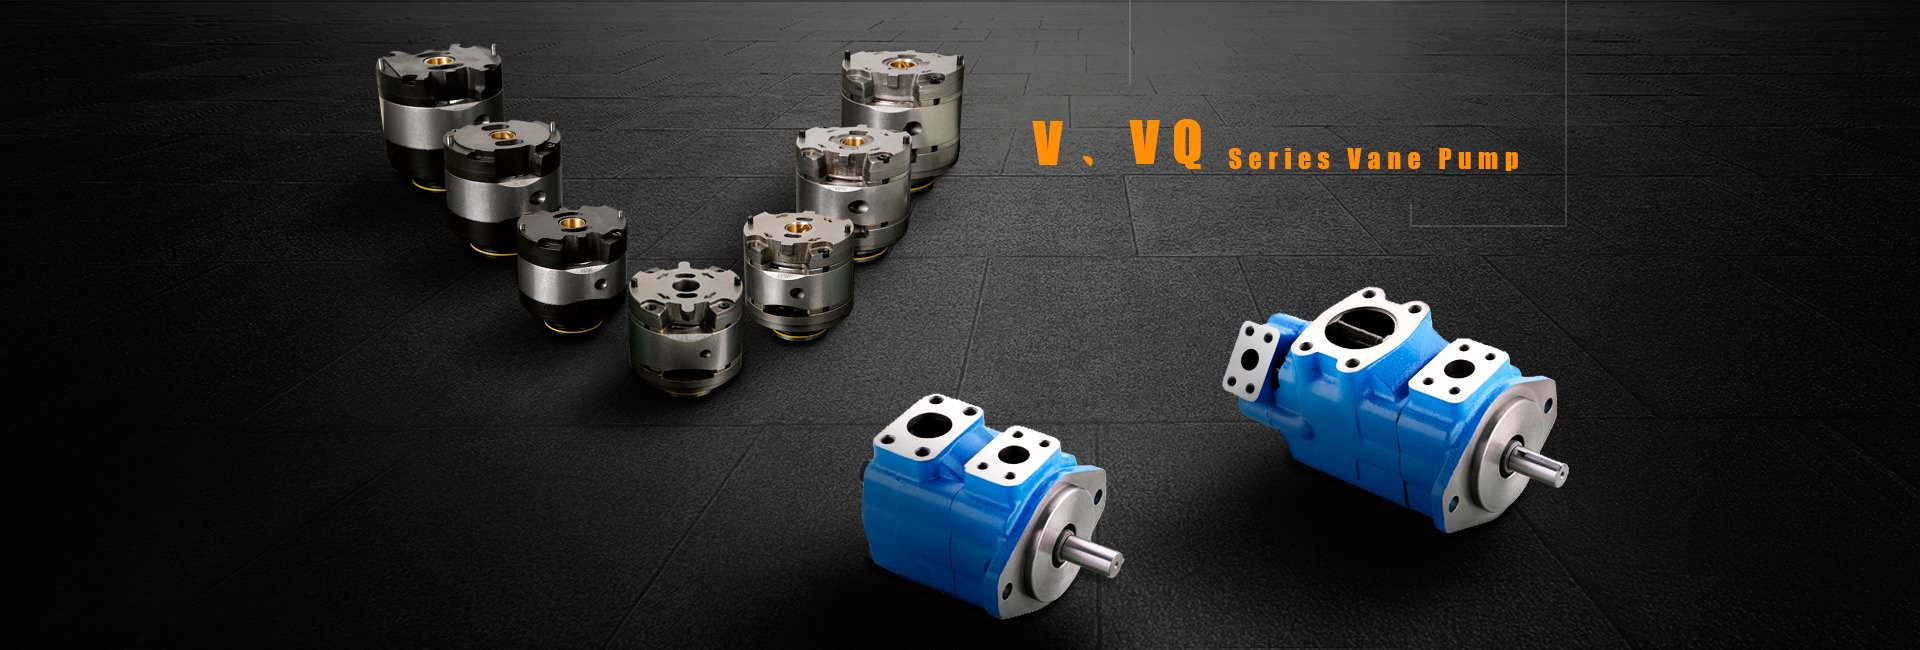 V, VQ Series Vane di-pump